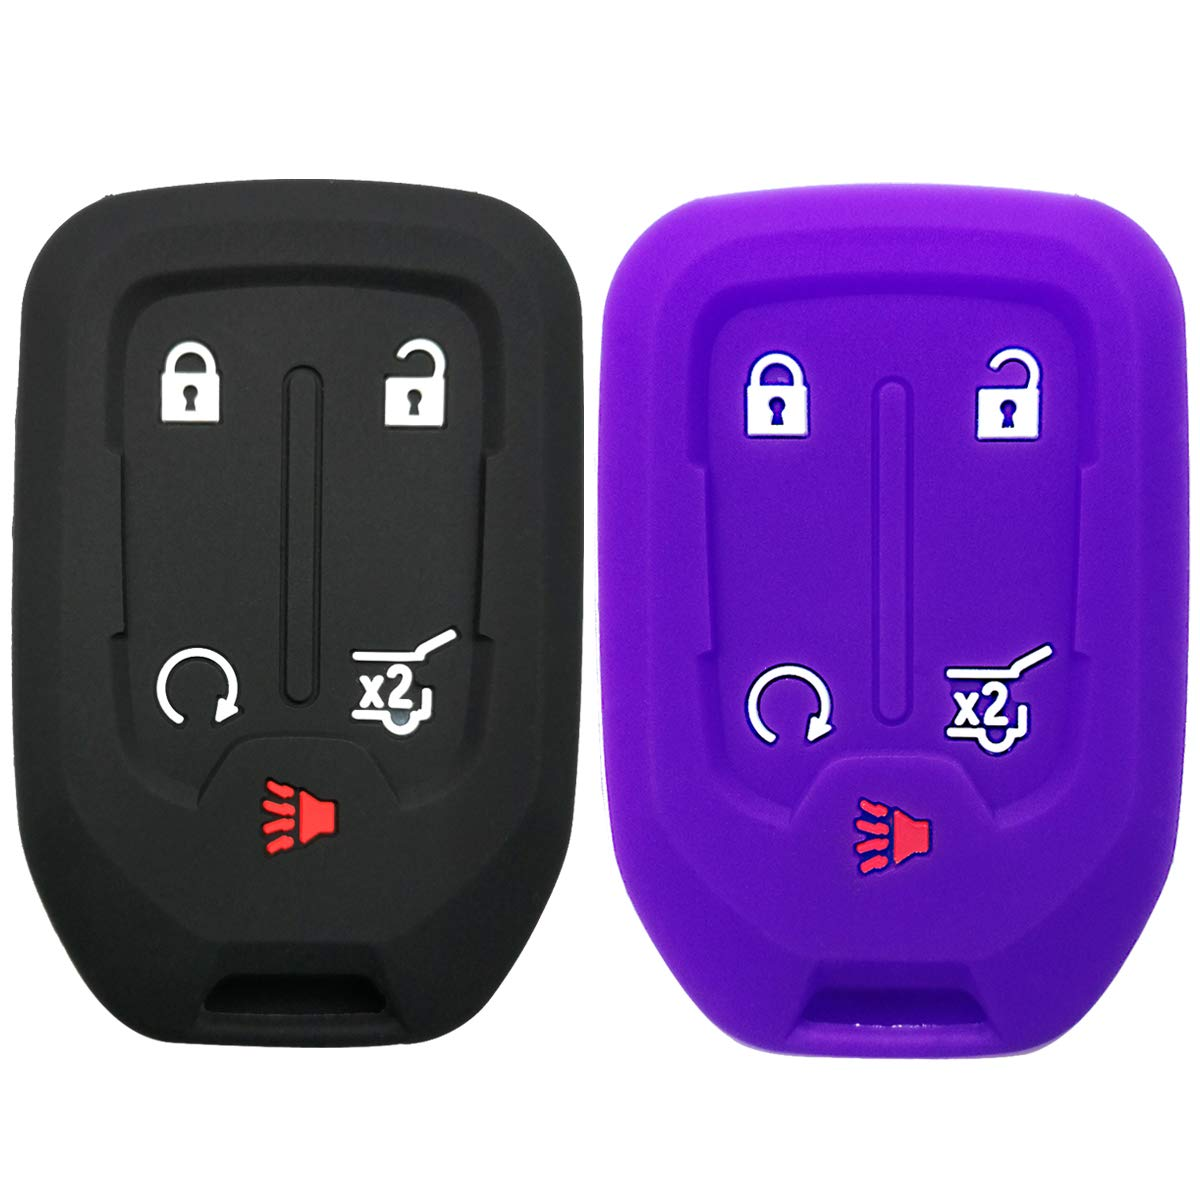 2Pcs Coolbestda Silicone Keyless Remote Entry Cover Accessories Protector Holder Case for GMC Acadia Terrain Yukon Chevrolet Suburban Tahoe HYQ1AA 13584502 1551A-AA